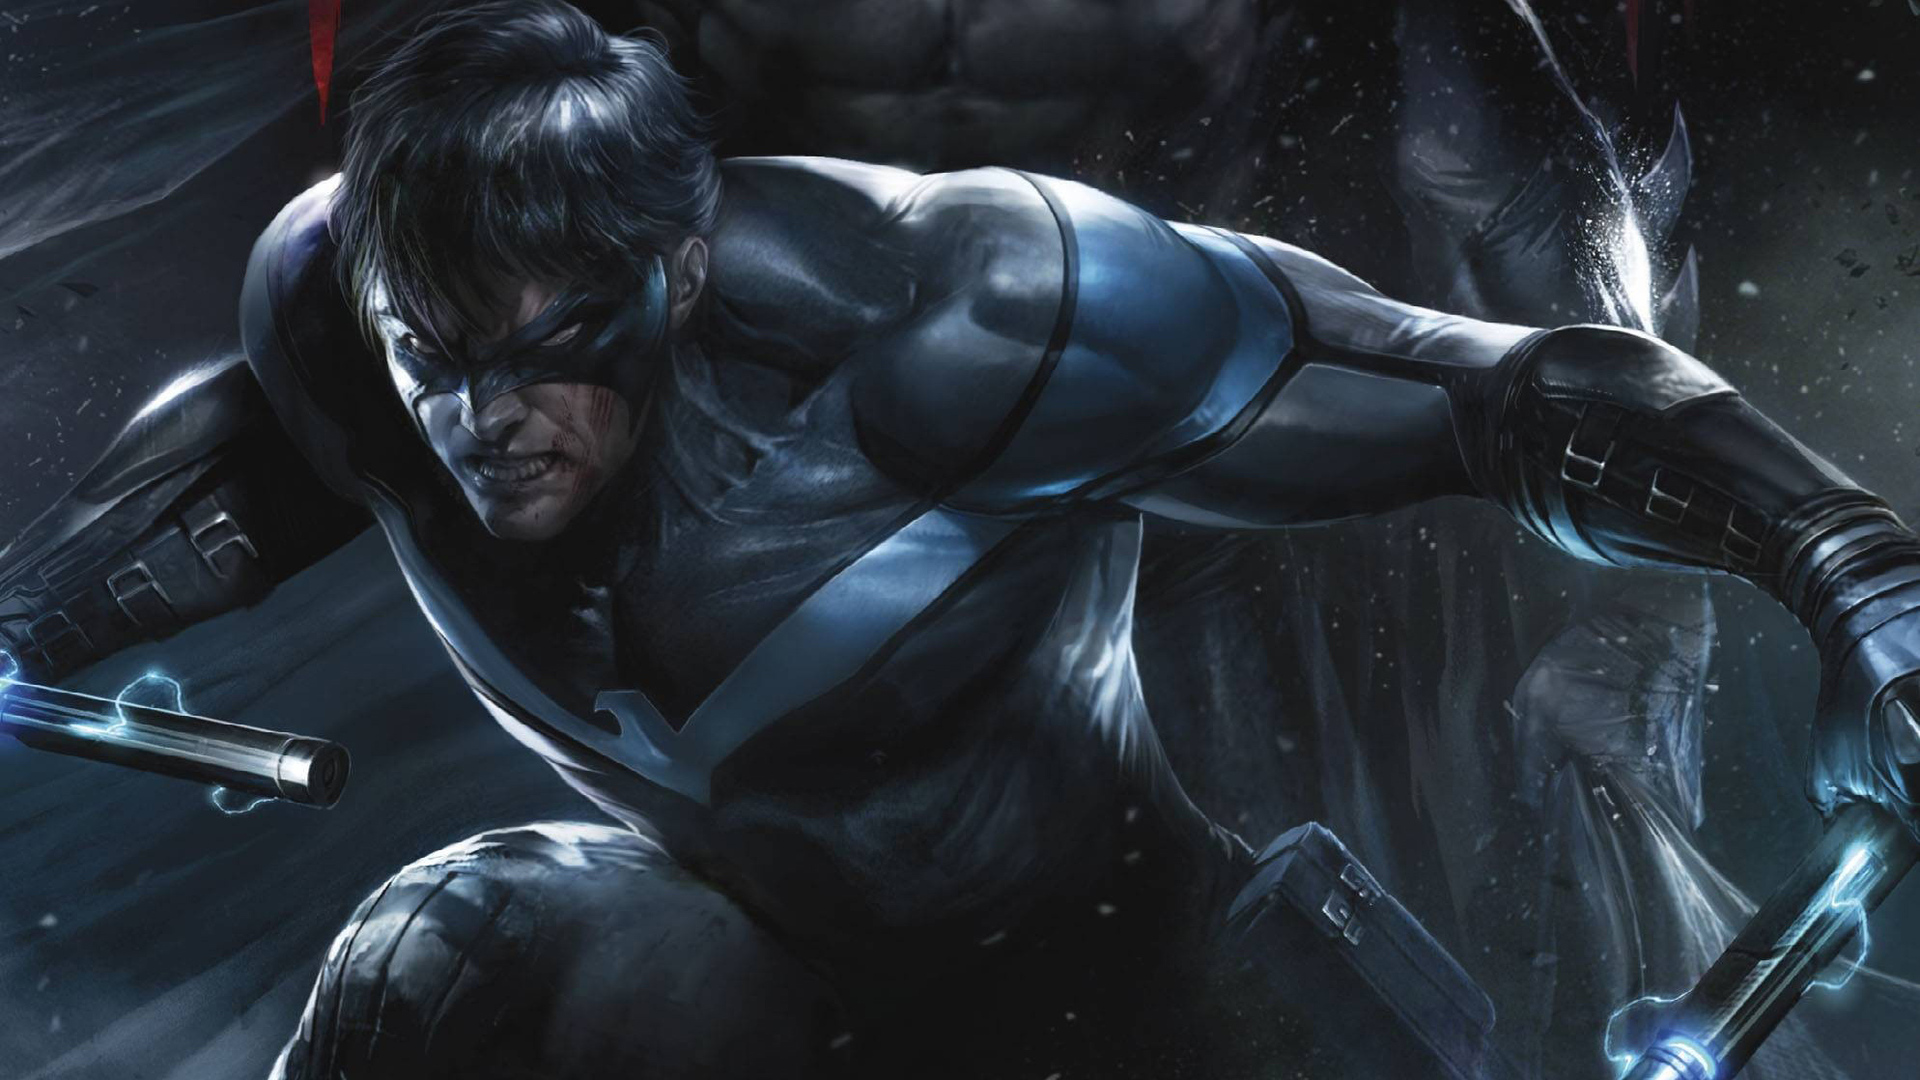 1920x1080 Nightwing Art Laptop Full HD 1080P HD 4k ...